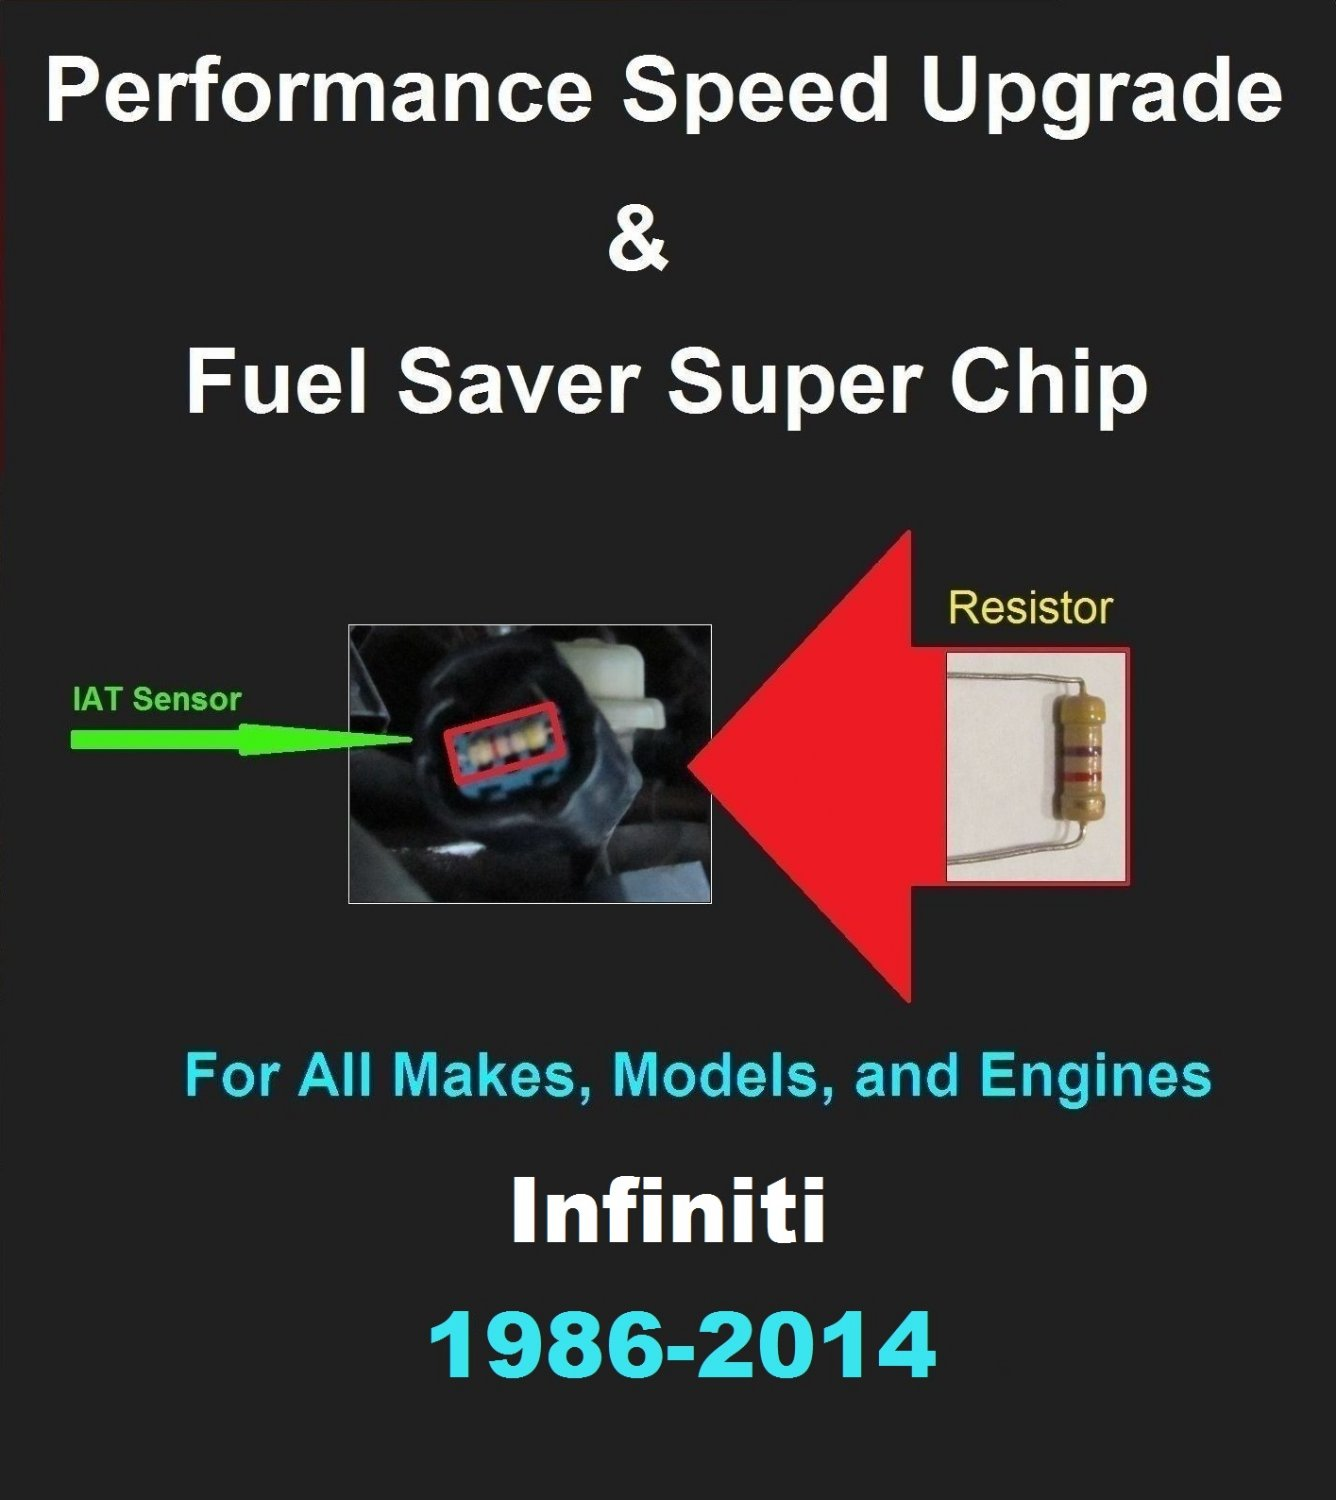 Infiniti Performance IAT Sensor Resistor Chip Mod Increase MPG HP Speed Power Super Fuel Gas Saver